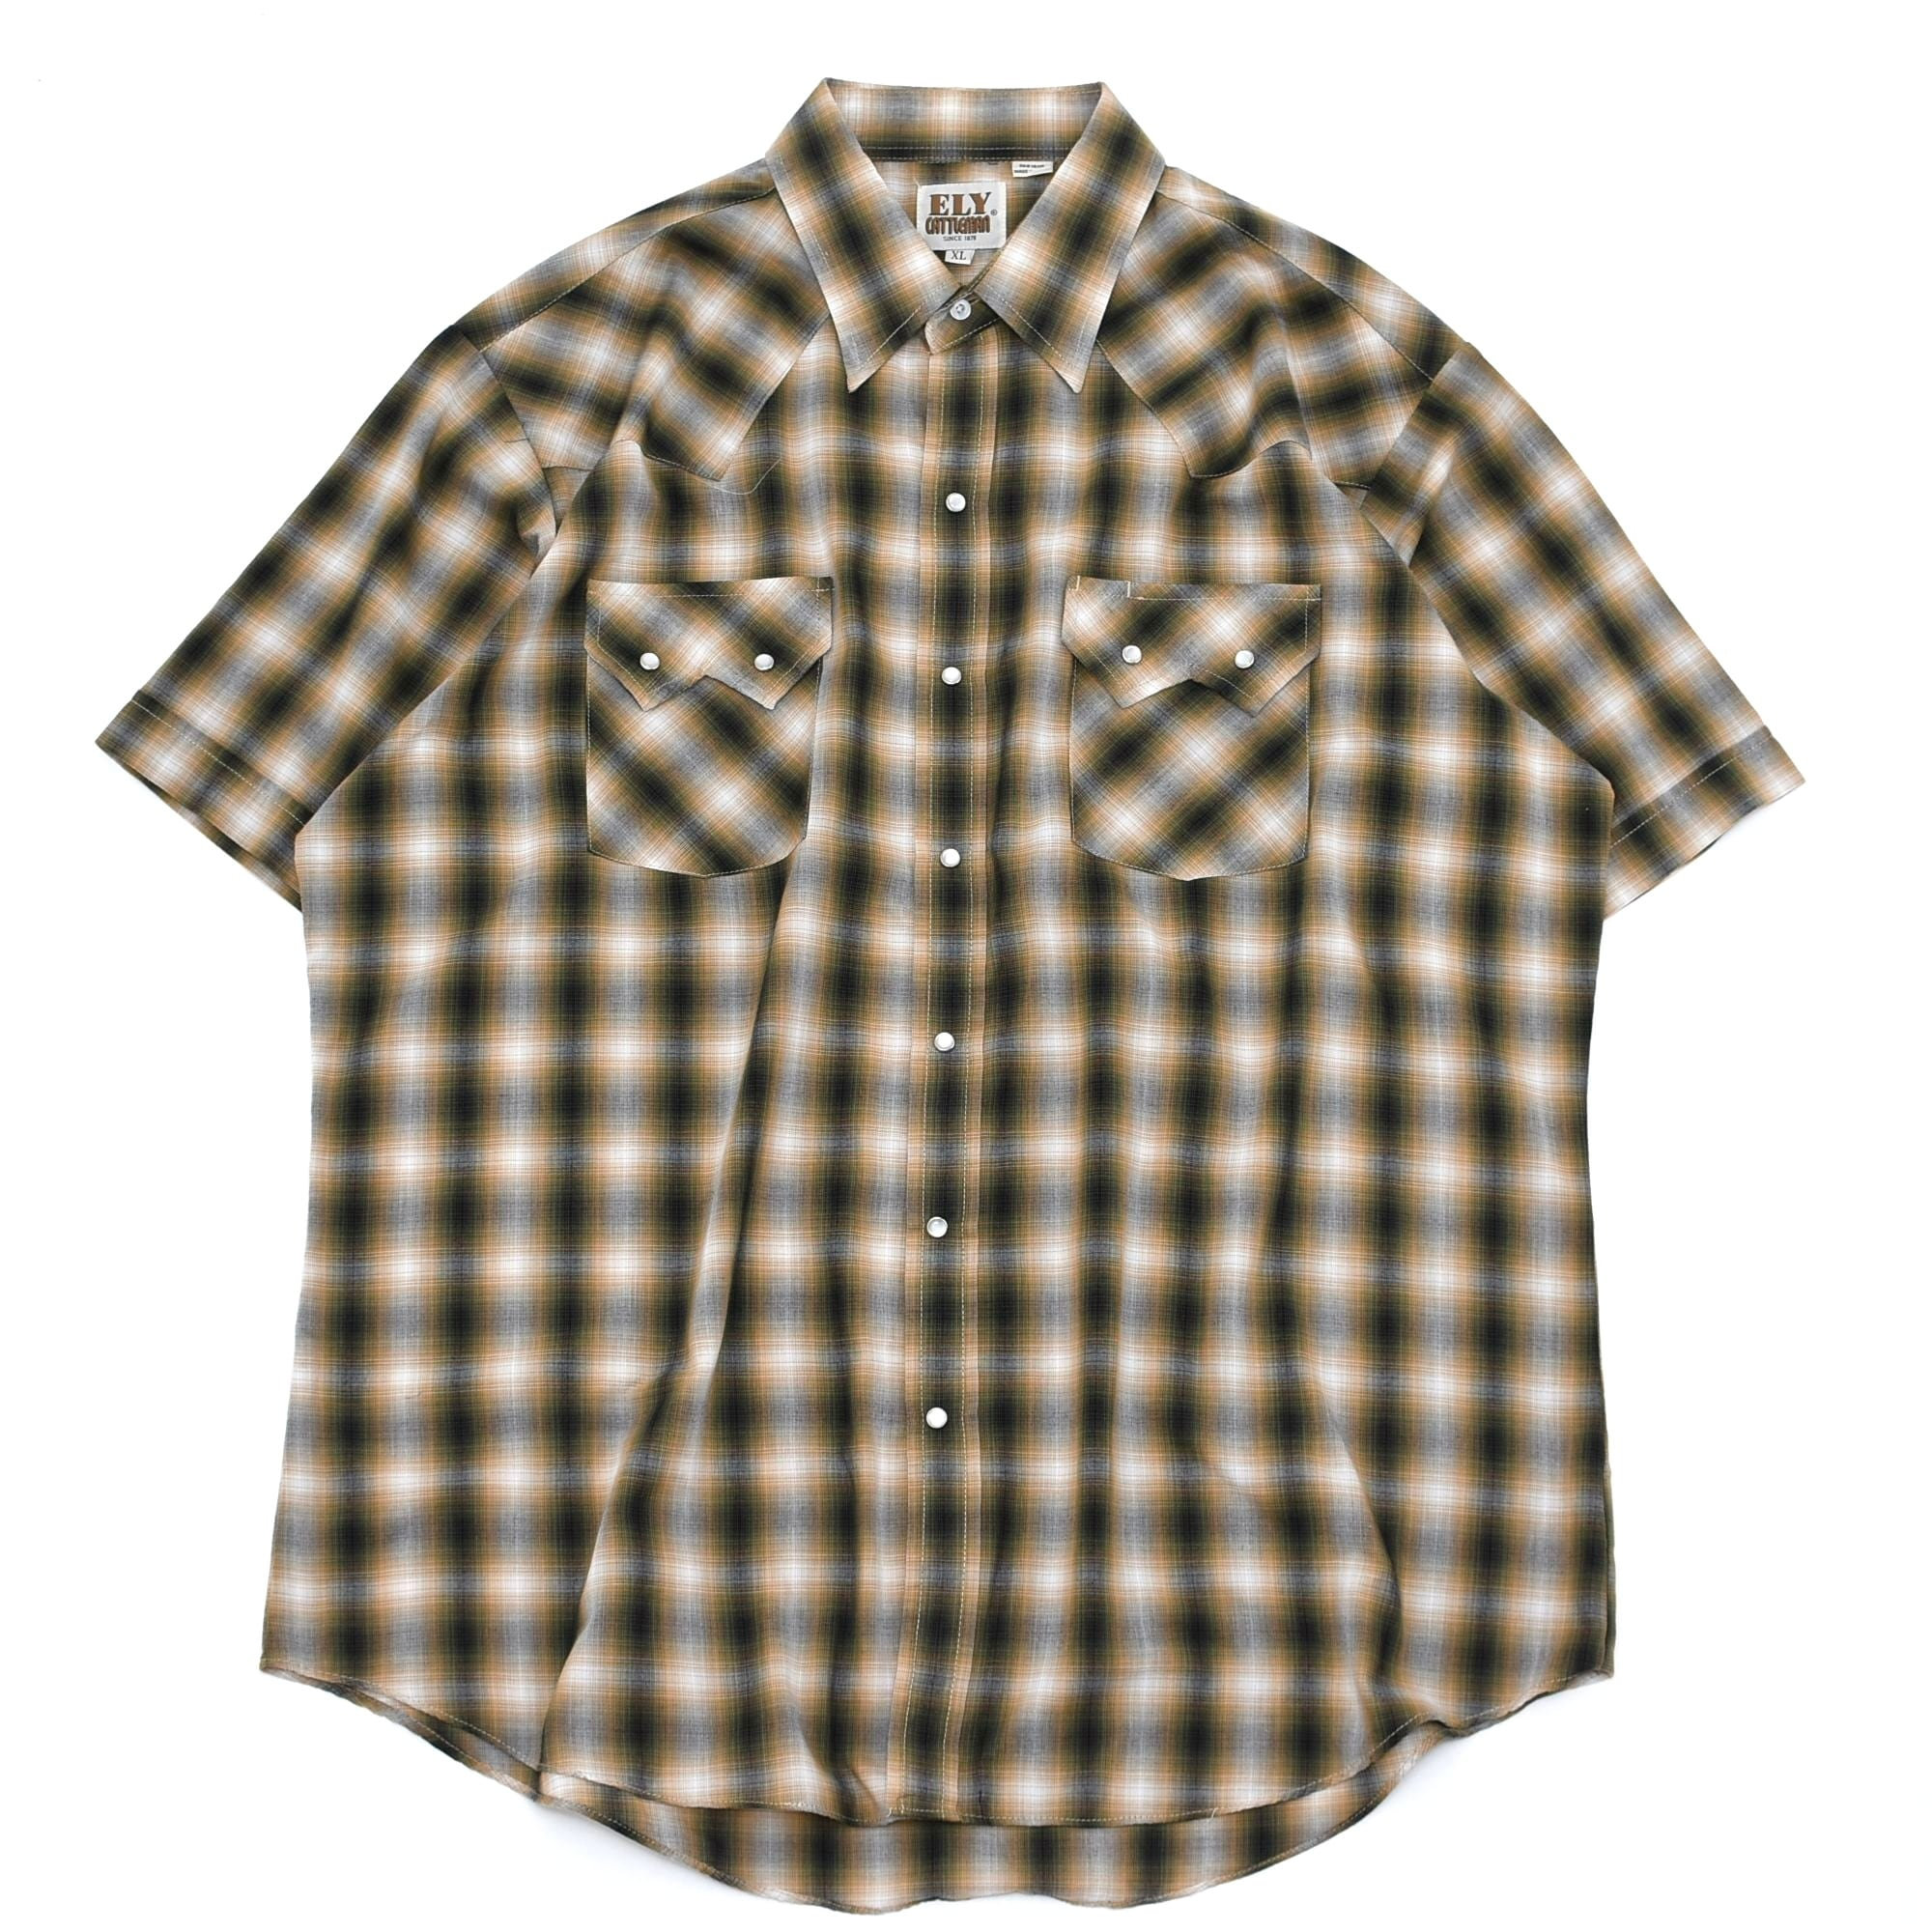 ELY CATTLEMAN ombre check western shirt